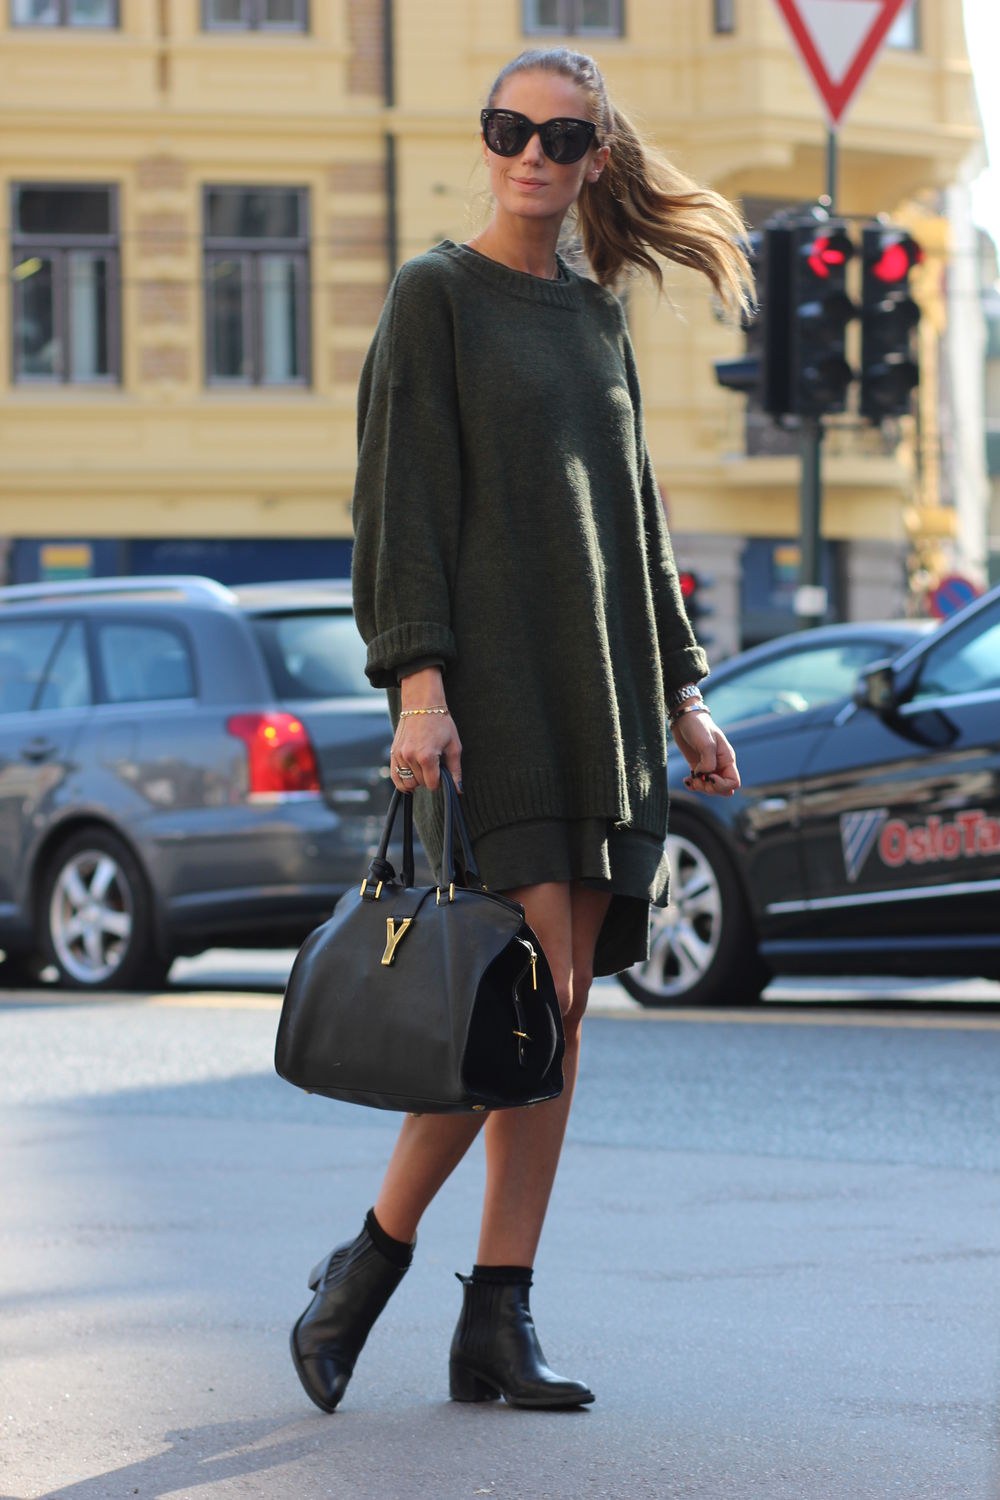 Benedichte is wearing an oversized knit military green sweater from H M 0918890e4